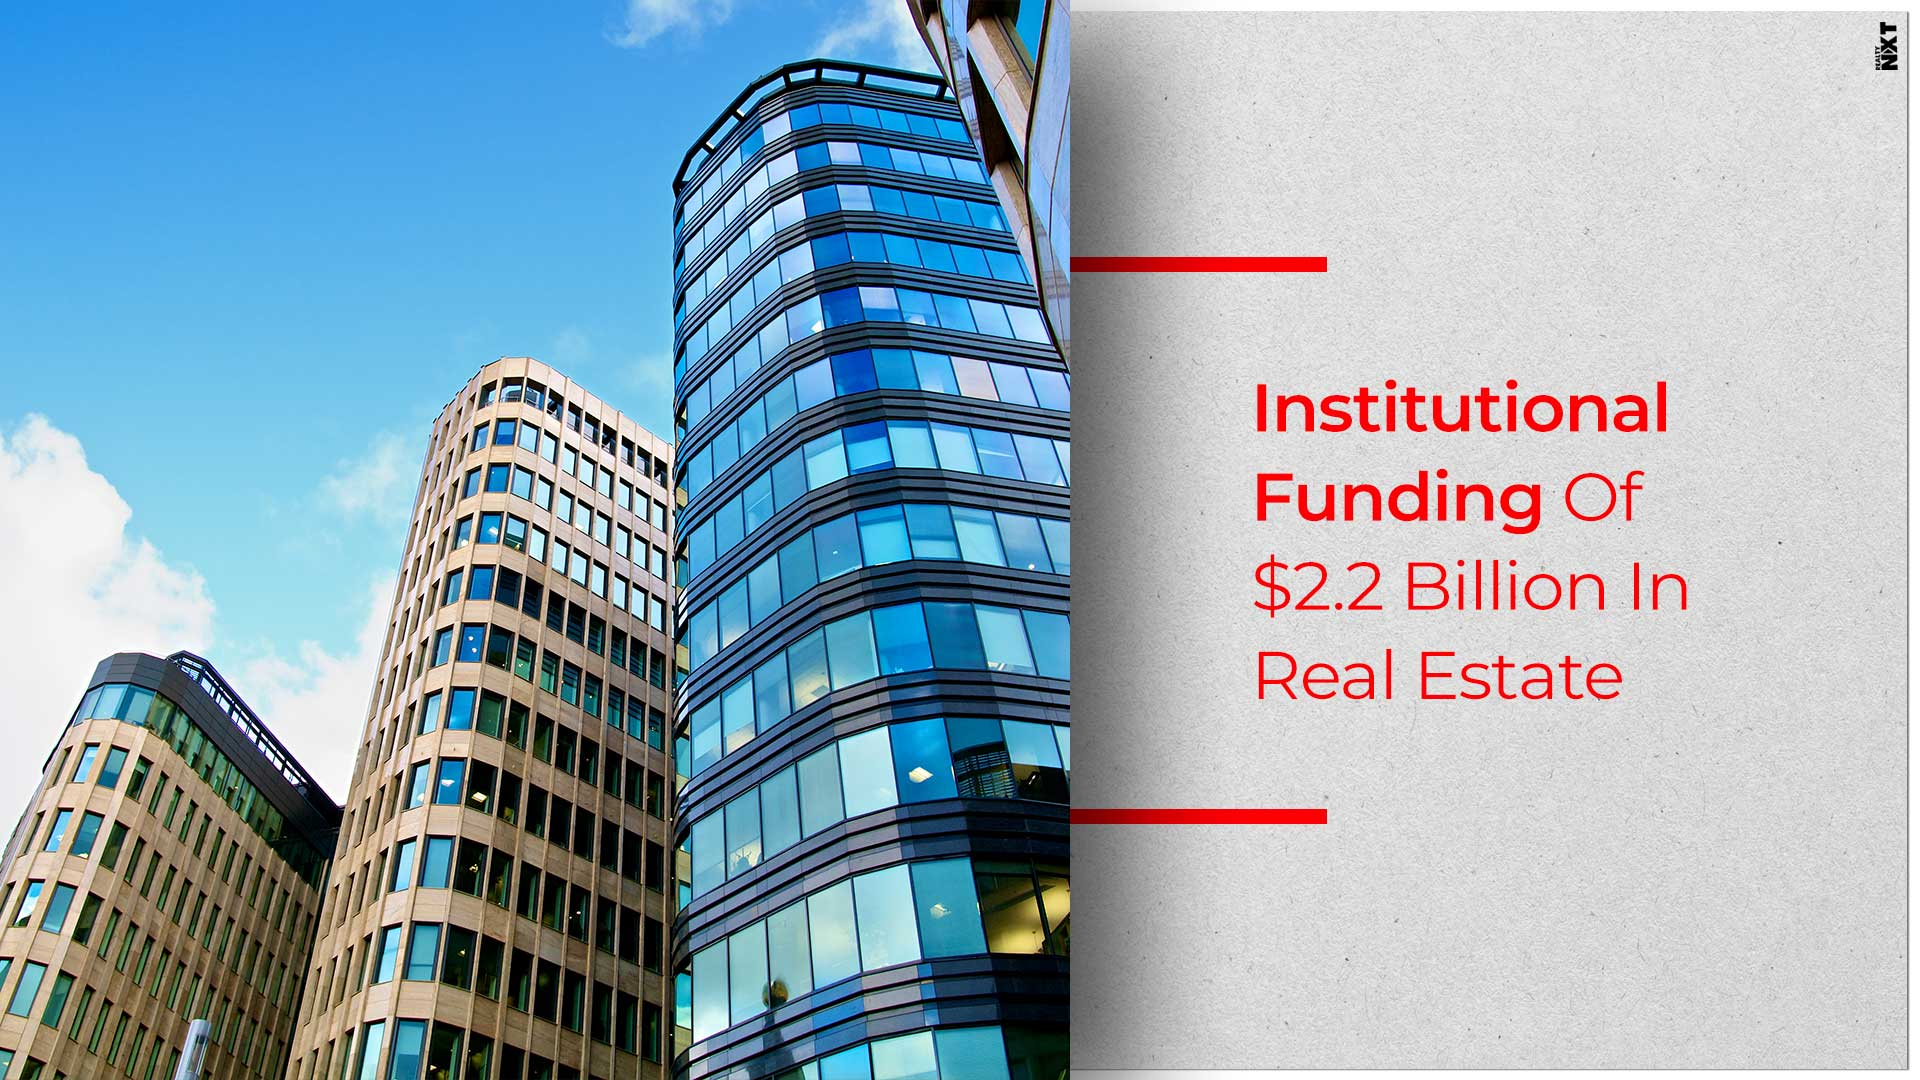 Institutional Funding Declined Compared To Previous Year